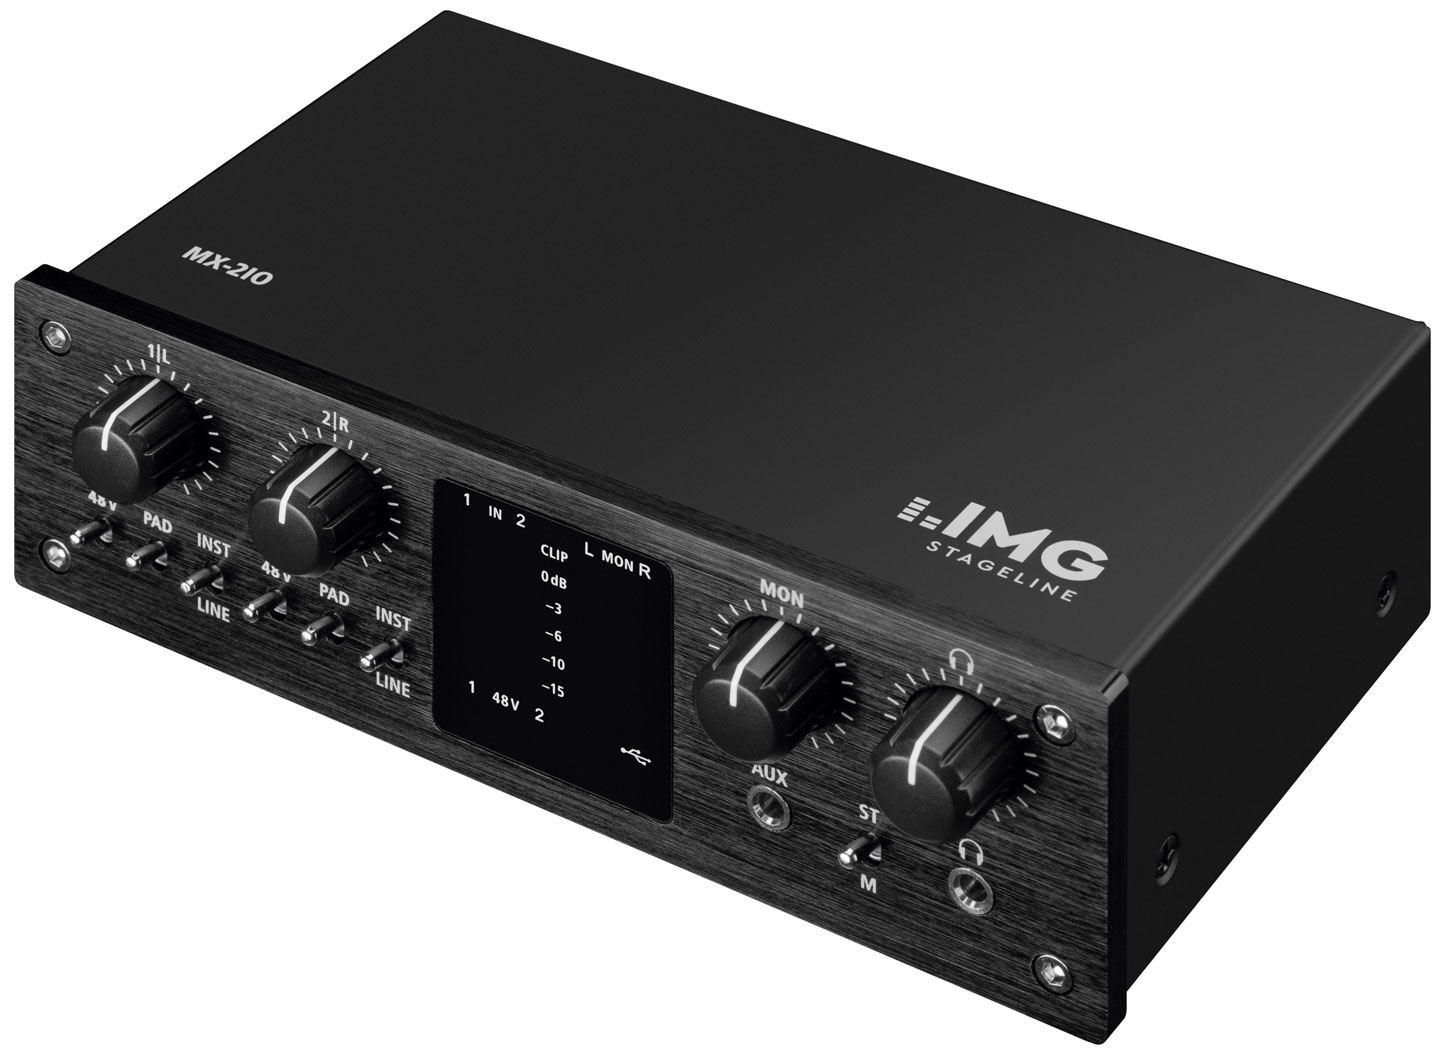 News: IMG Stageline mit Audiointerfaces MX-2IO und MX-1IO